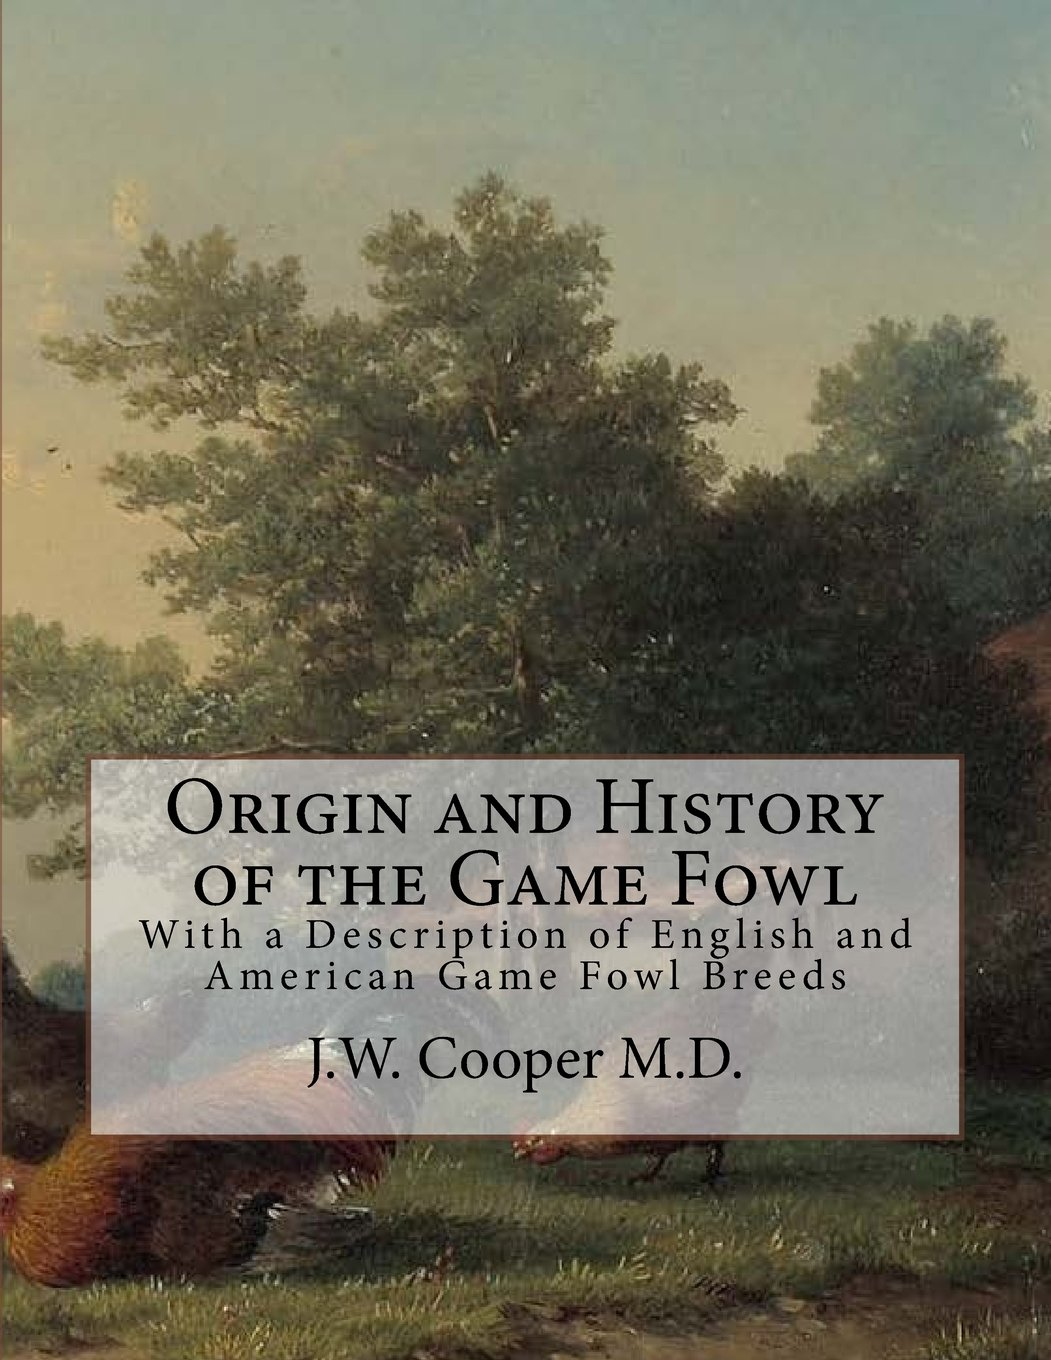 Origin and History of the Game Fowl: With a Description of